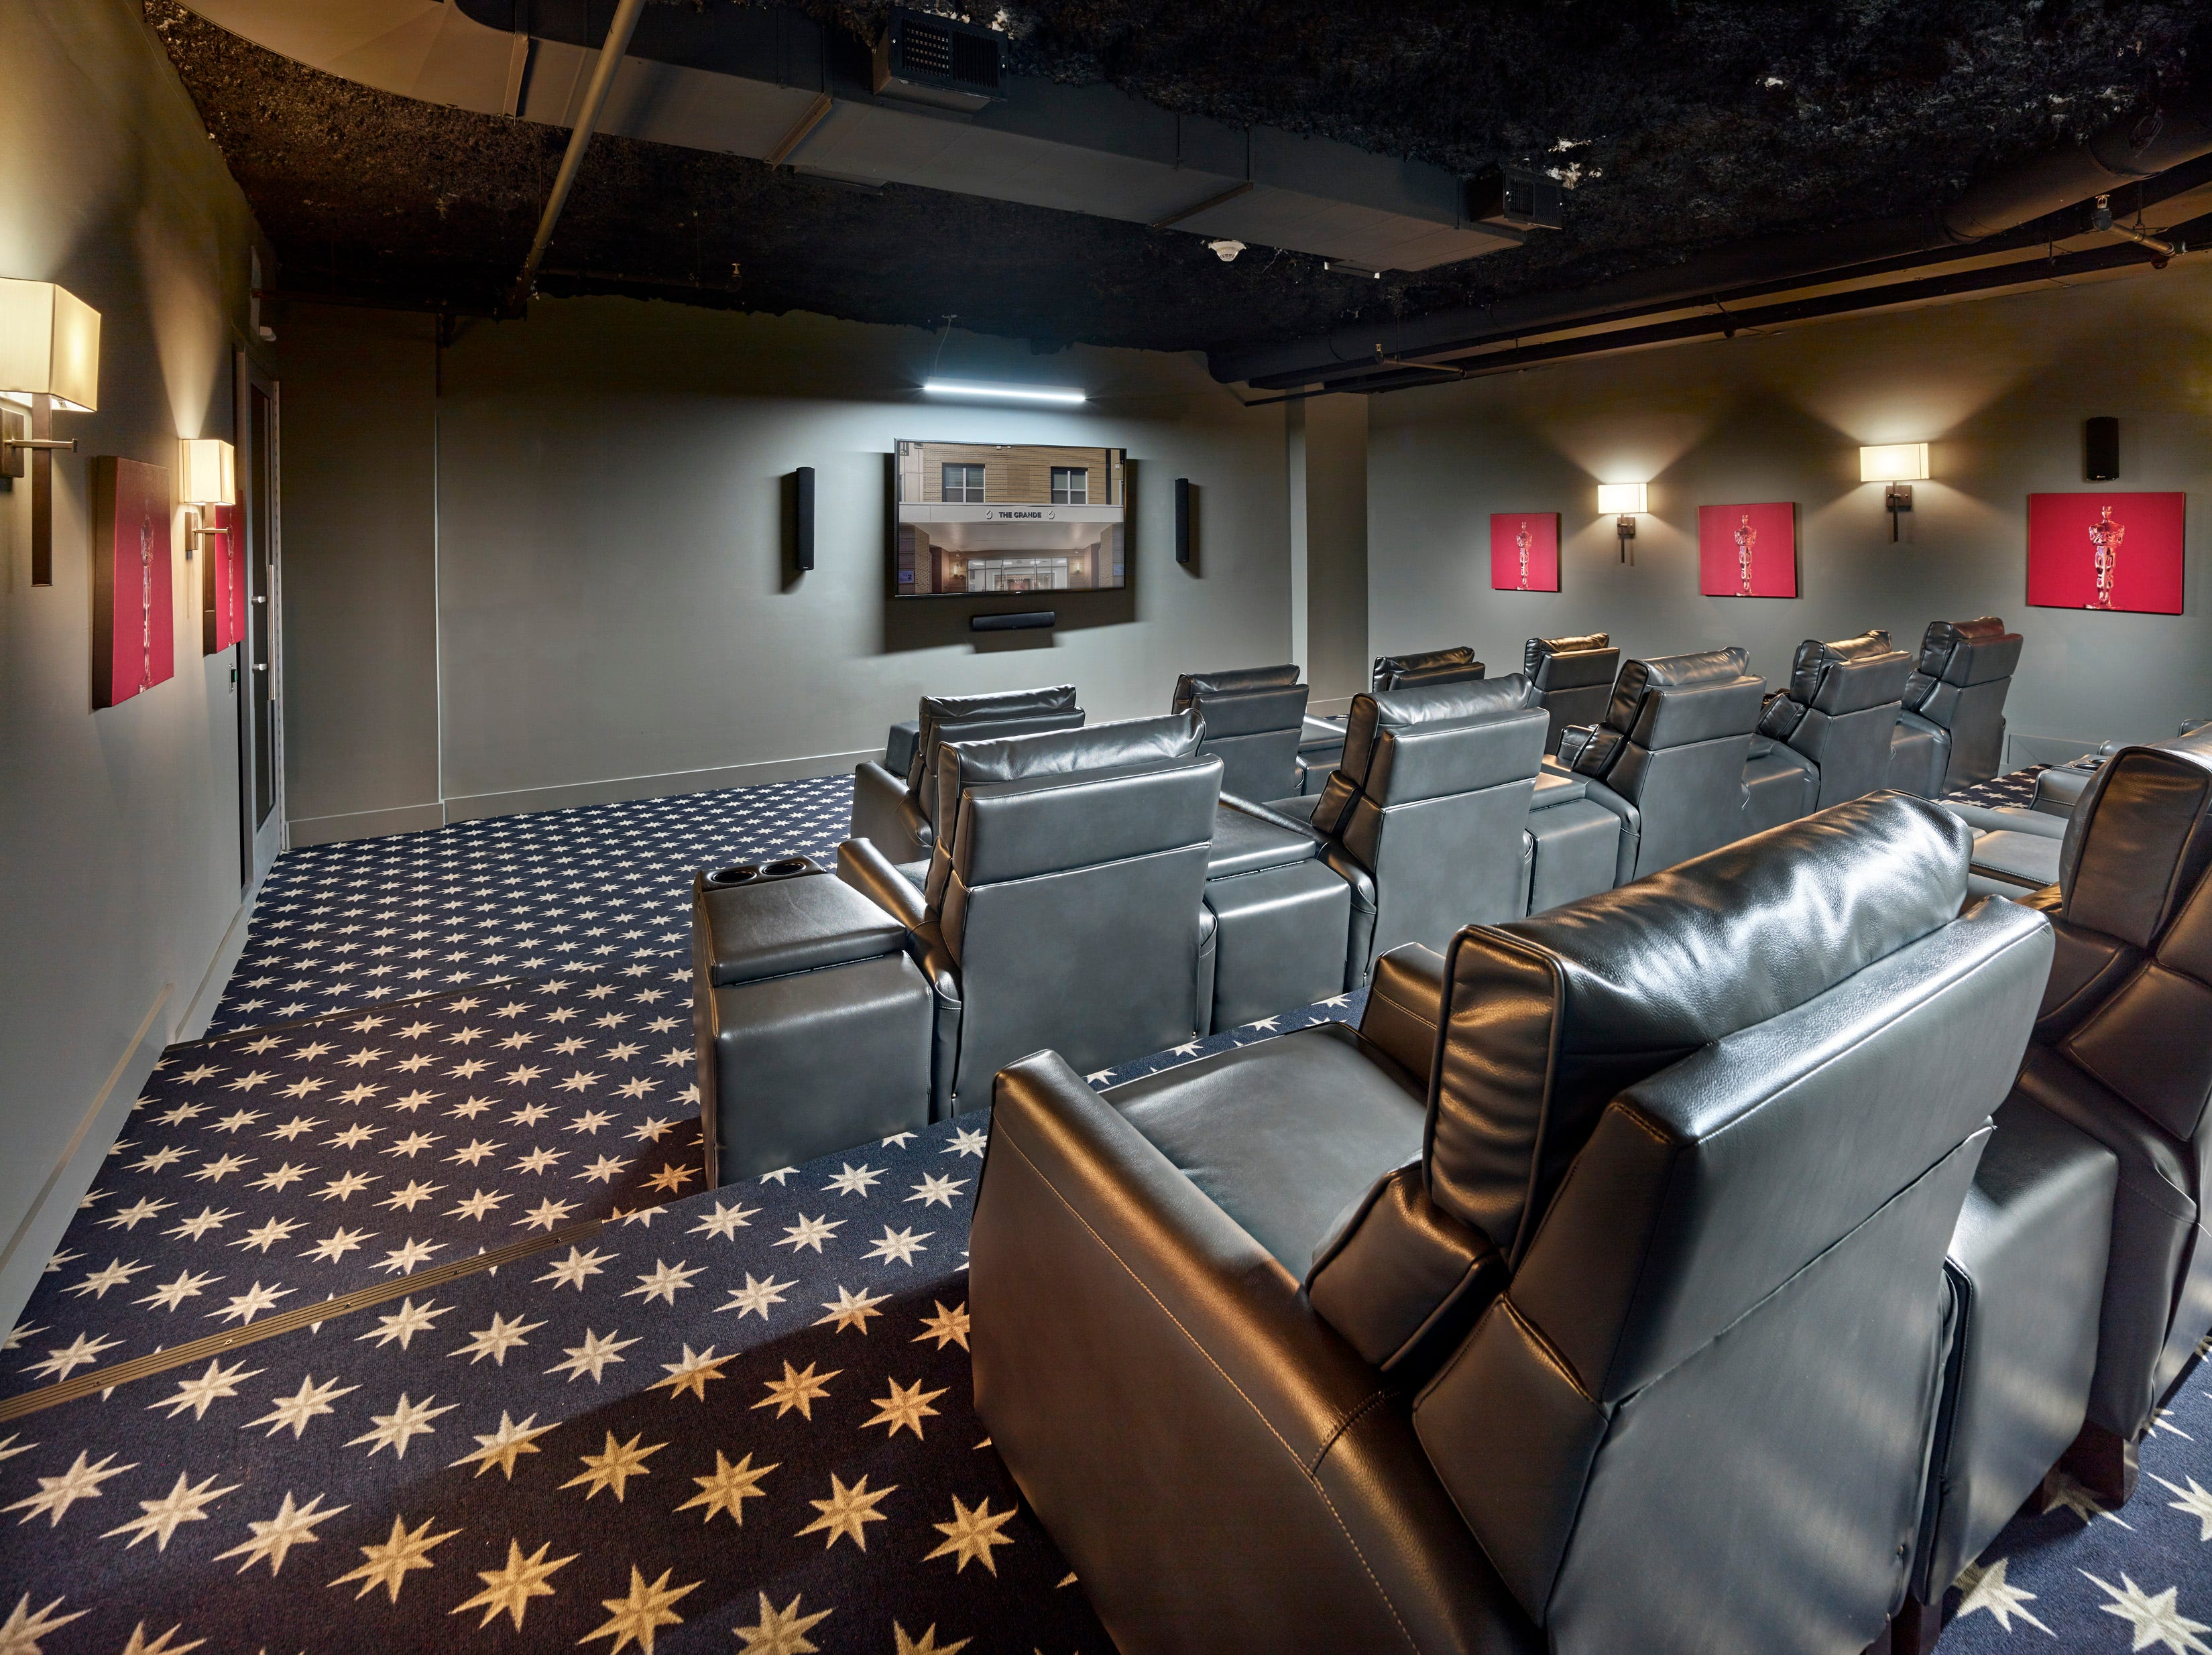 The movie theater at The Grande at Metropark in the Iselin section of Woodbridge Township.